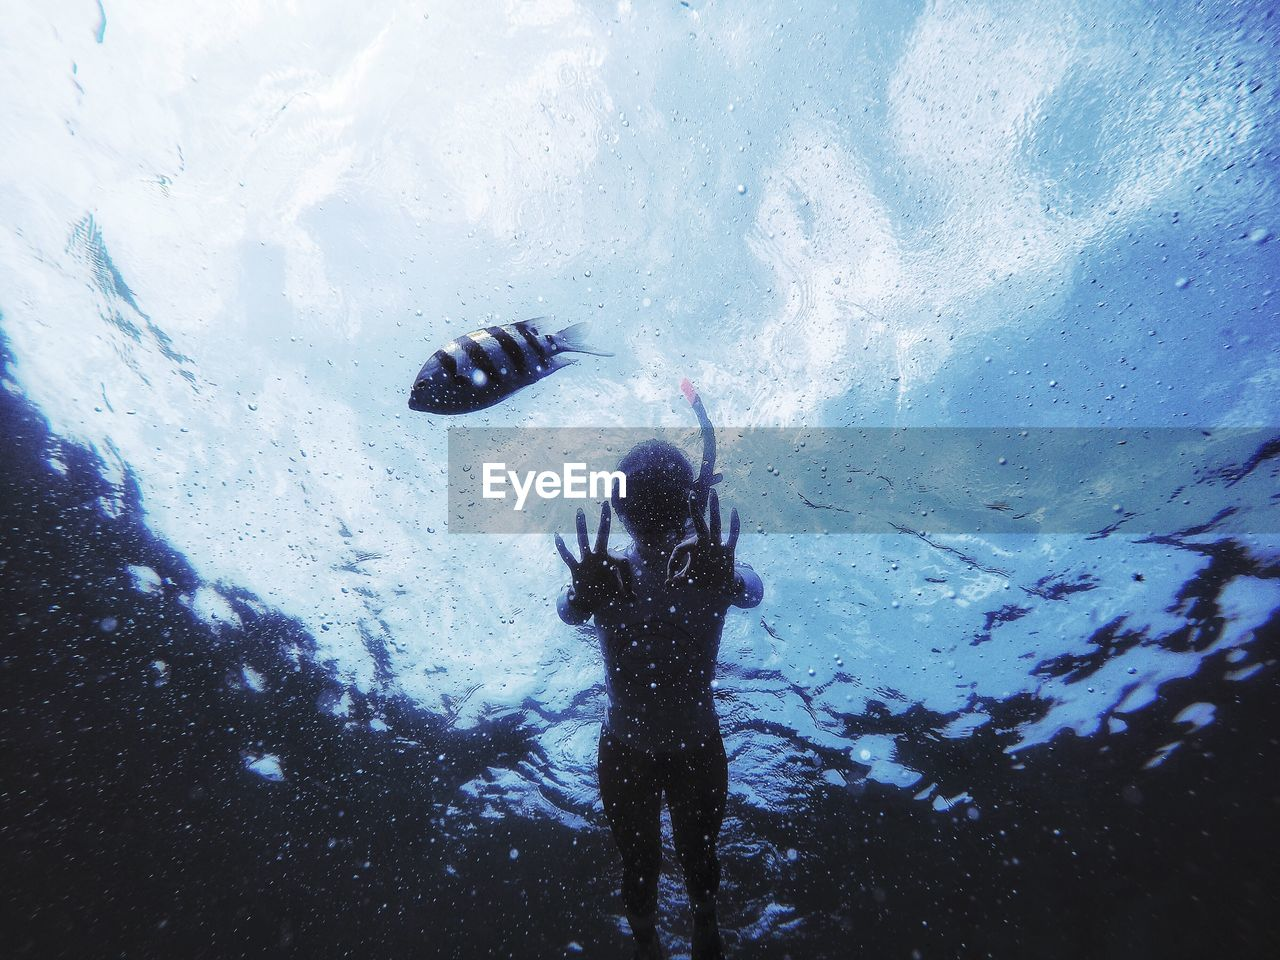 Low angle view of scuba diver gesturing in sea